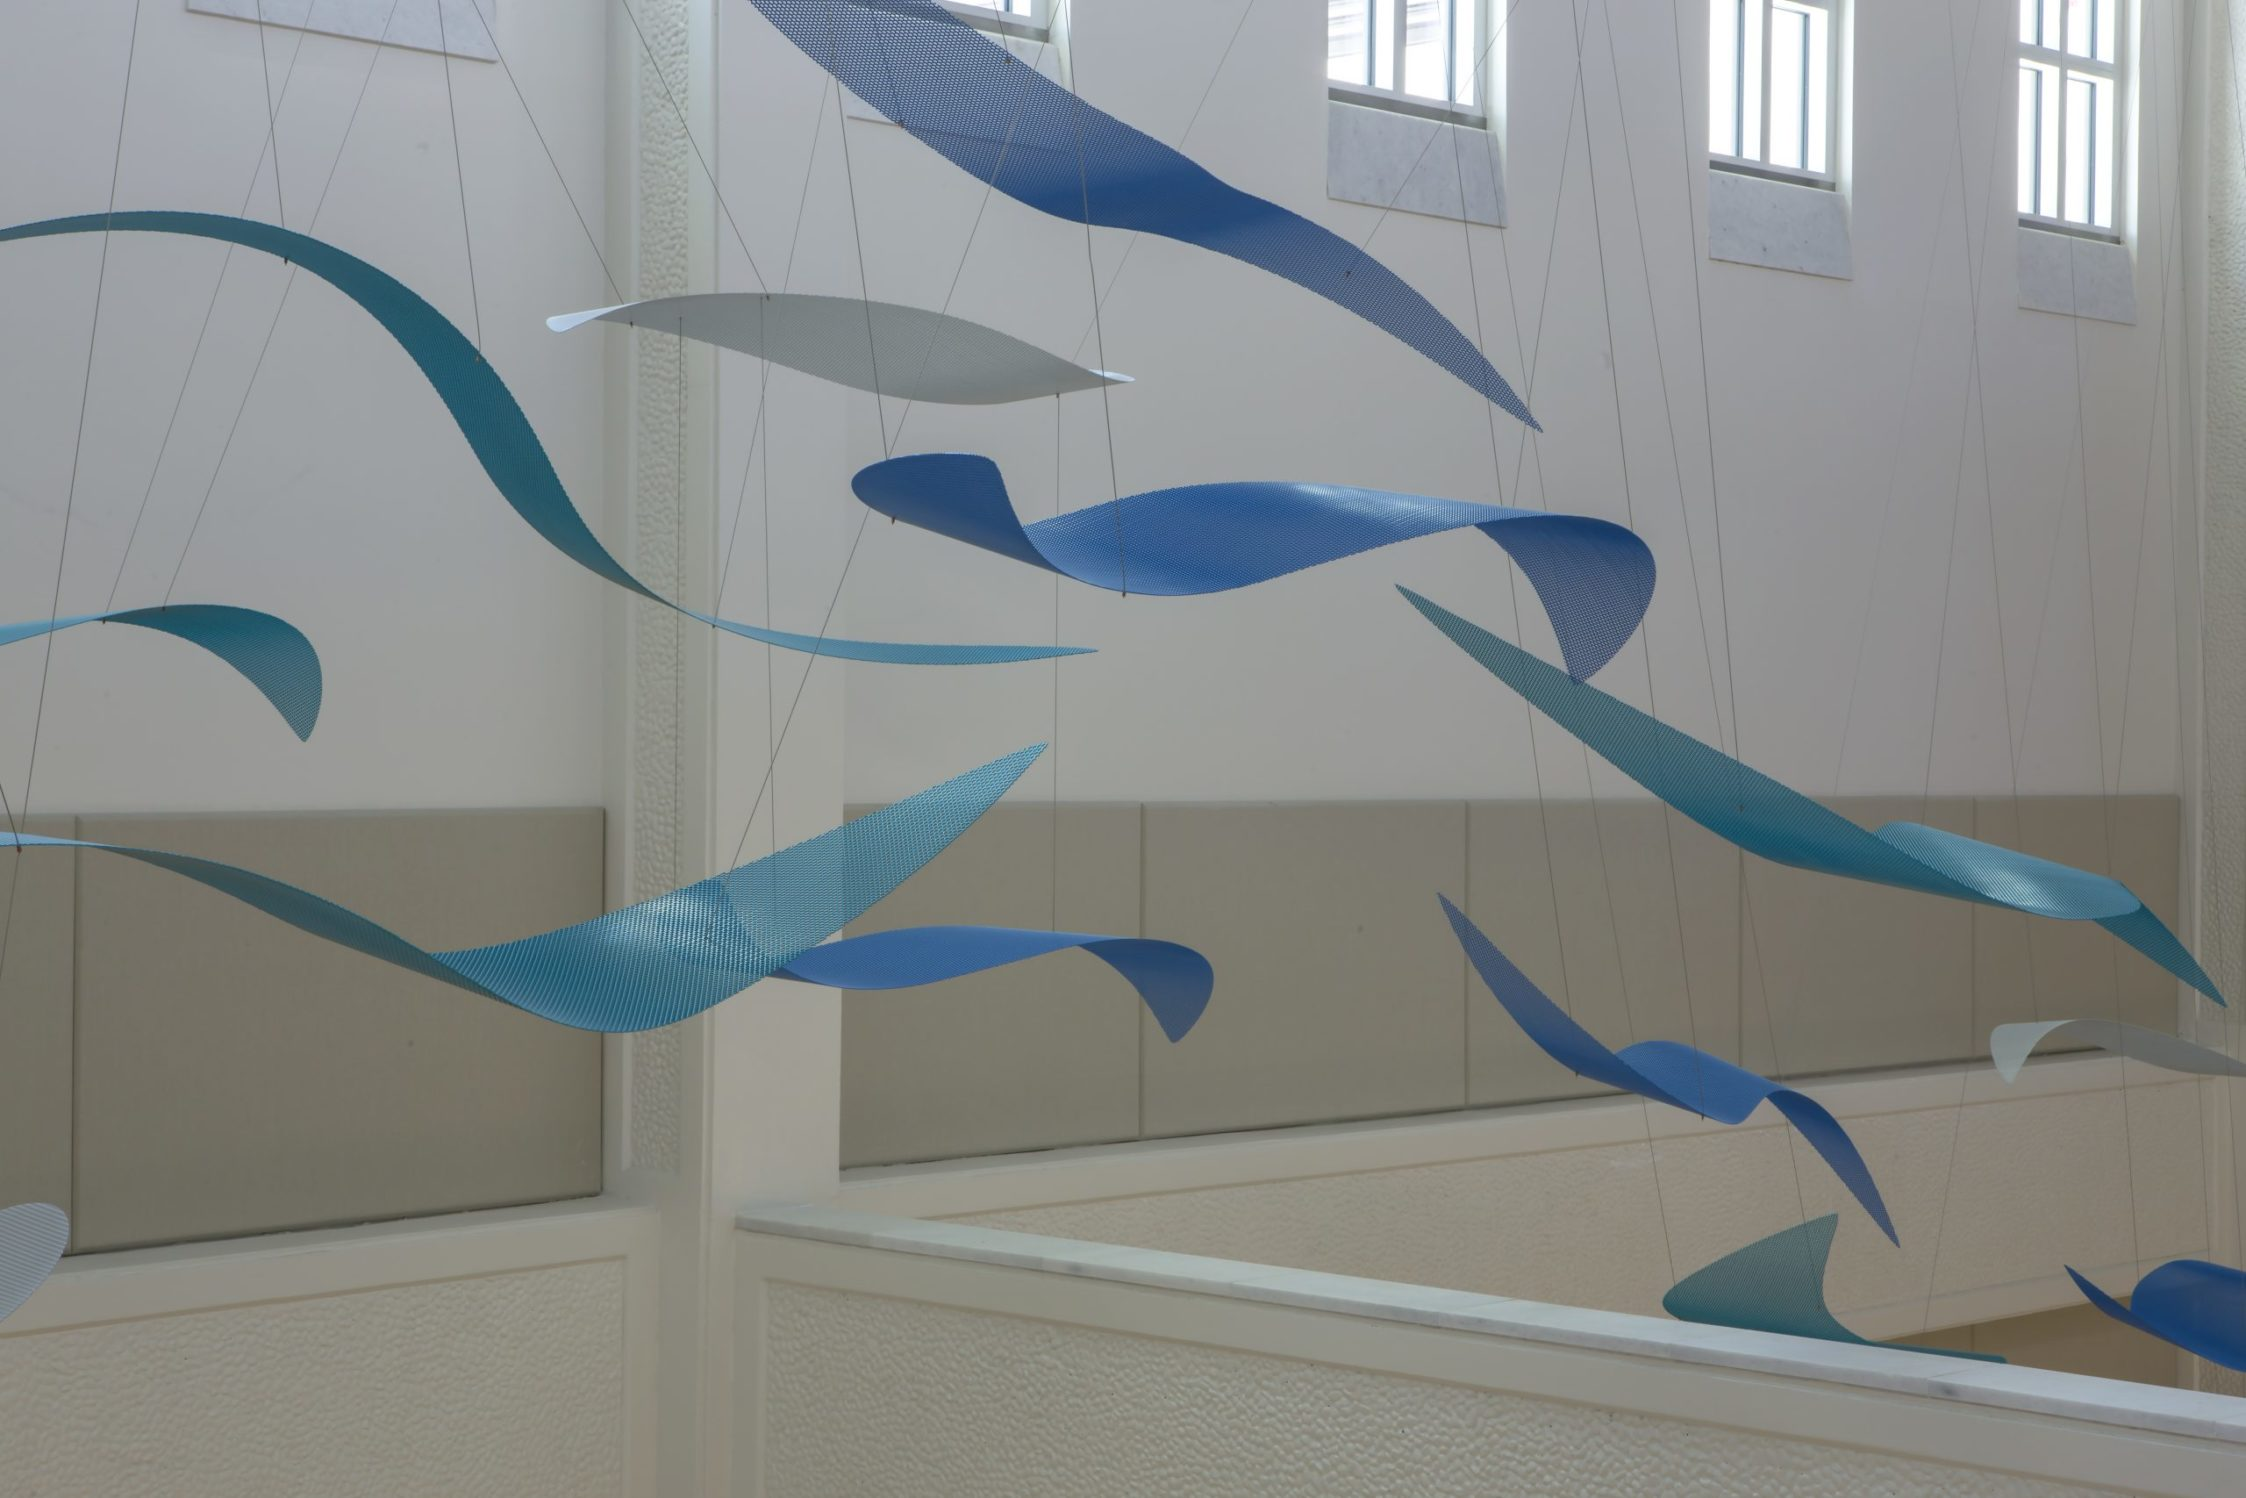 Blue and white wave elements from Talley Fisher's Sea Change in US Naval Hospital, Guam